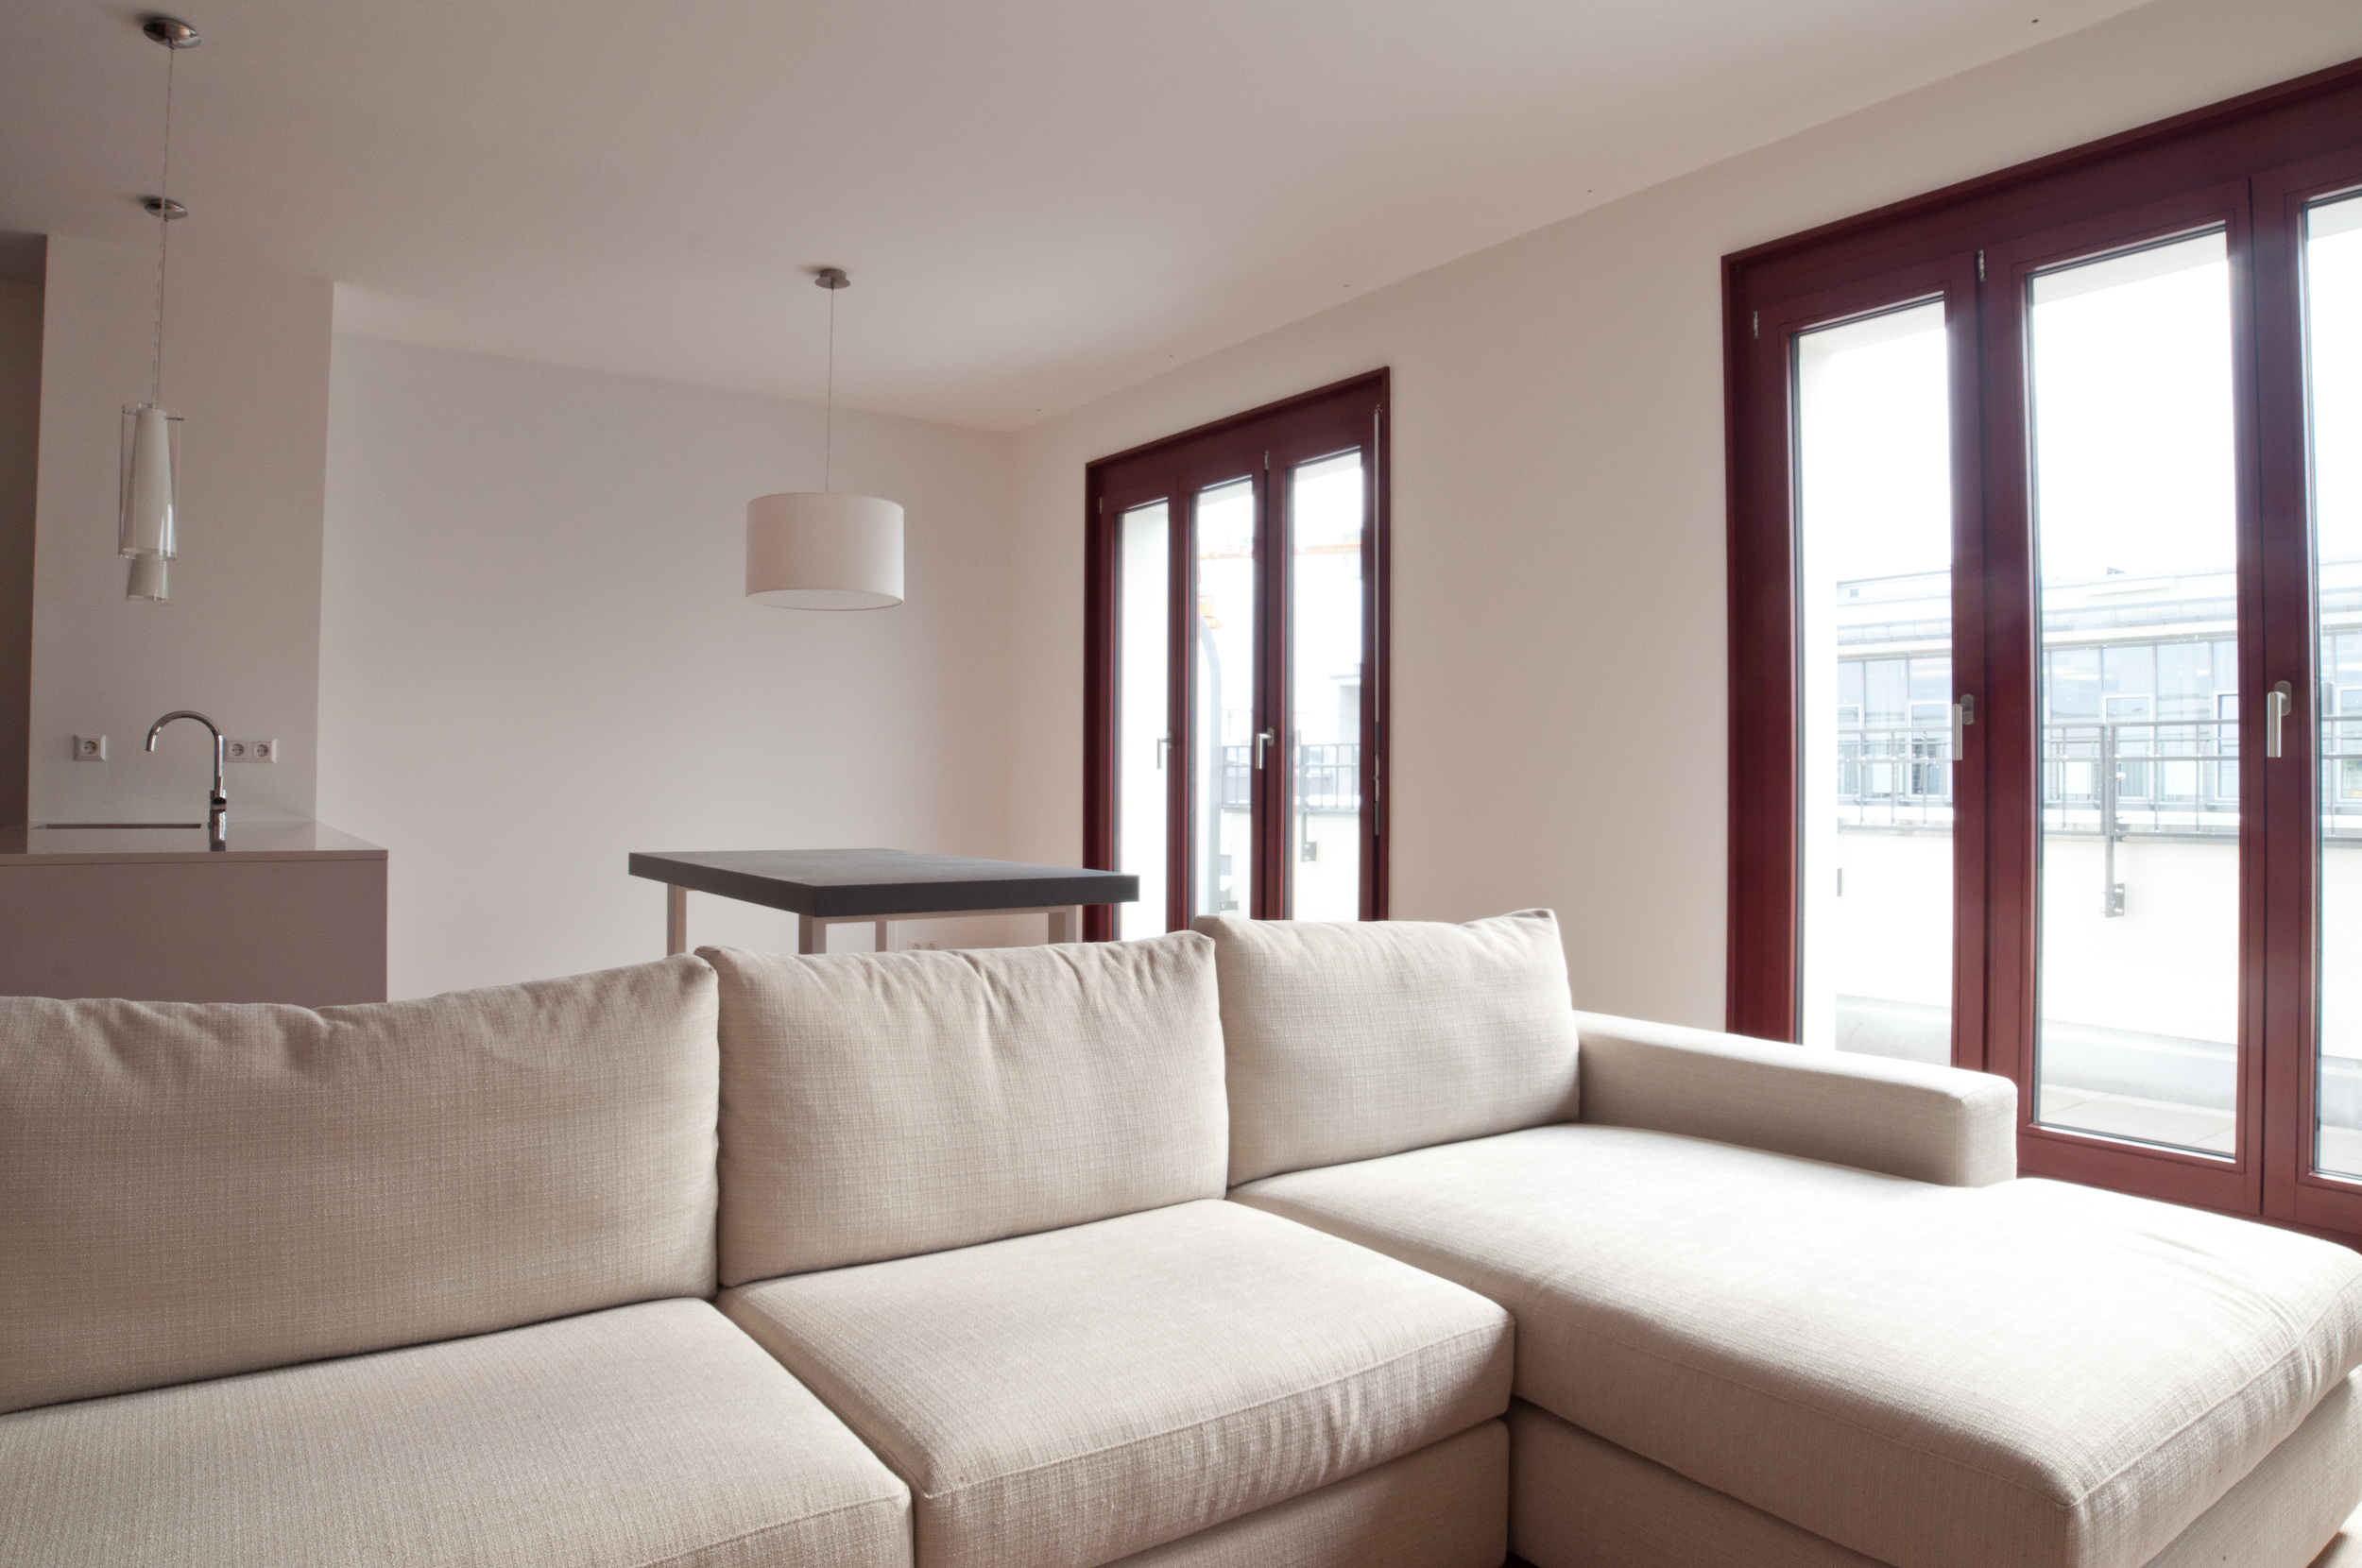 re-vamp_homestaging_musterwohnung_penthouse_2.jpg